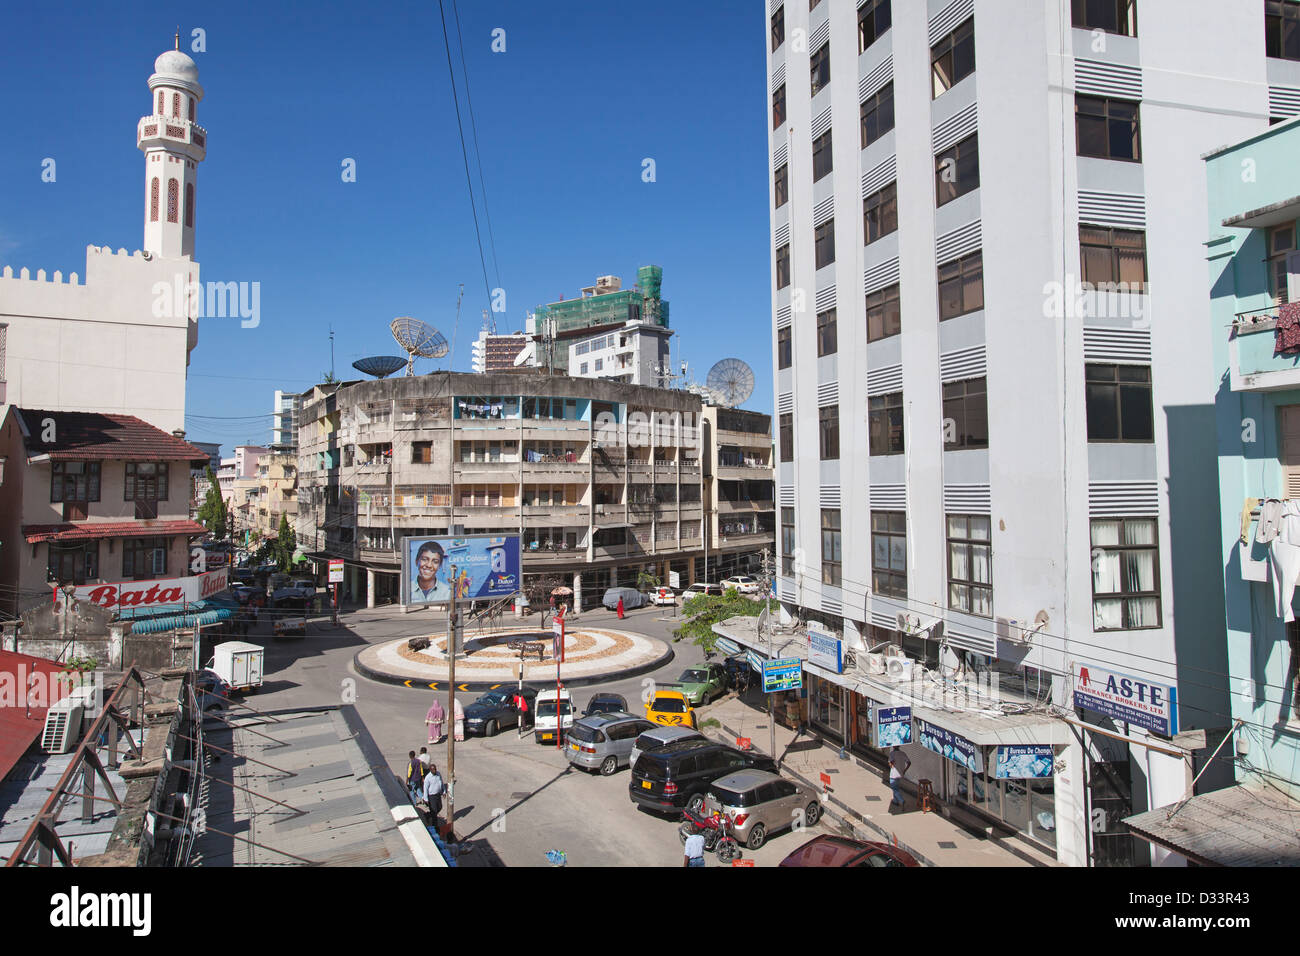 View down India Street in central Dar es Salaam, Tanzania. - Stock Image